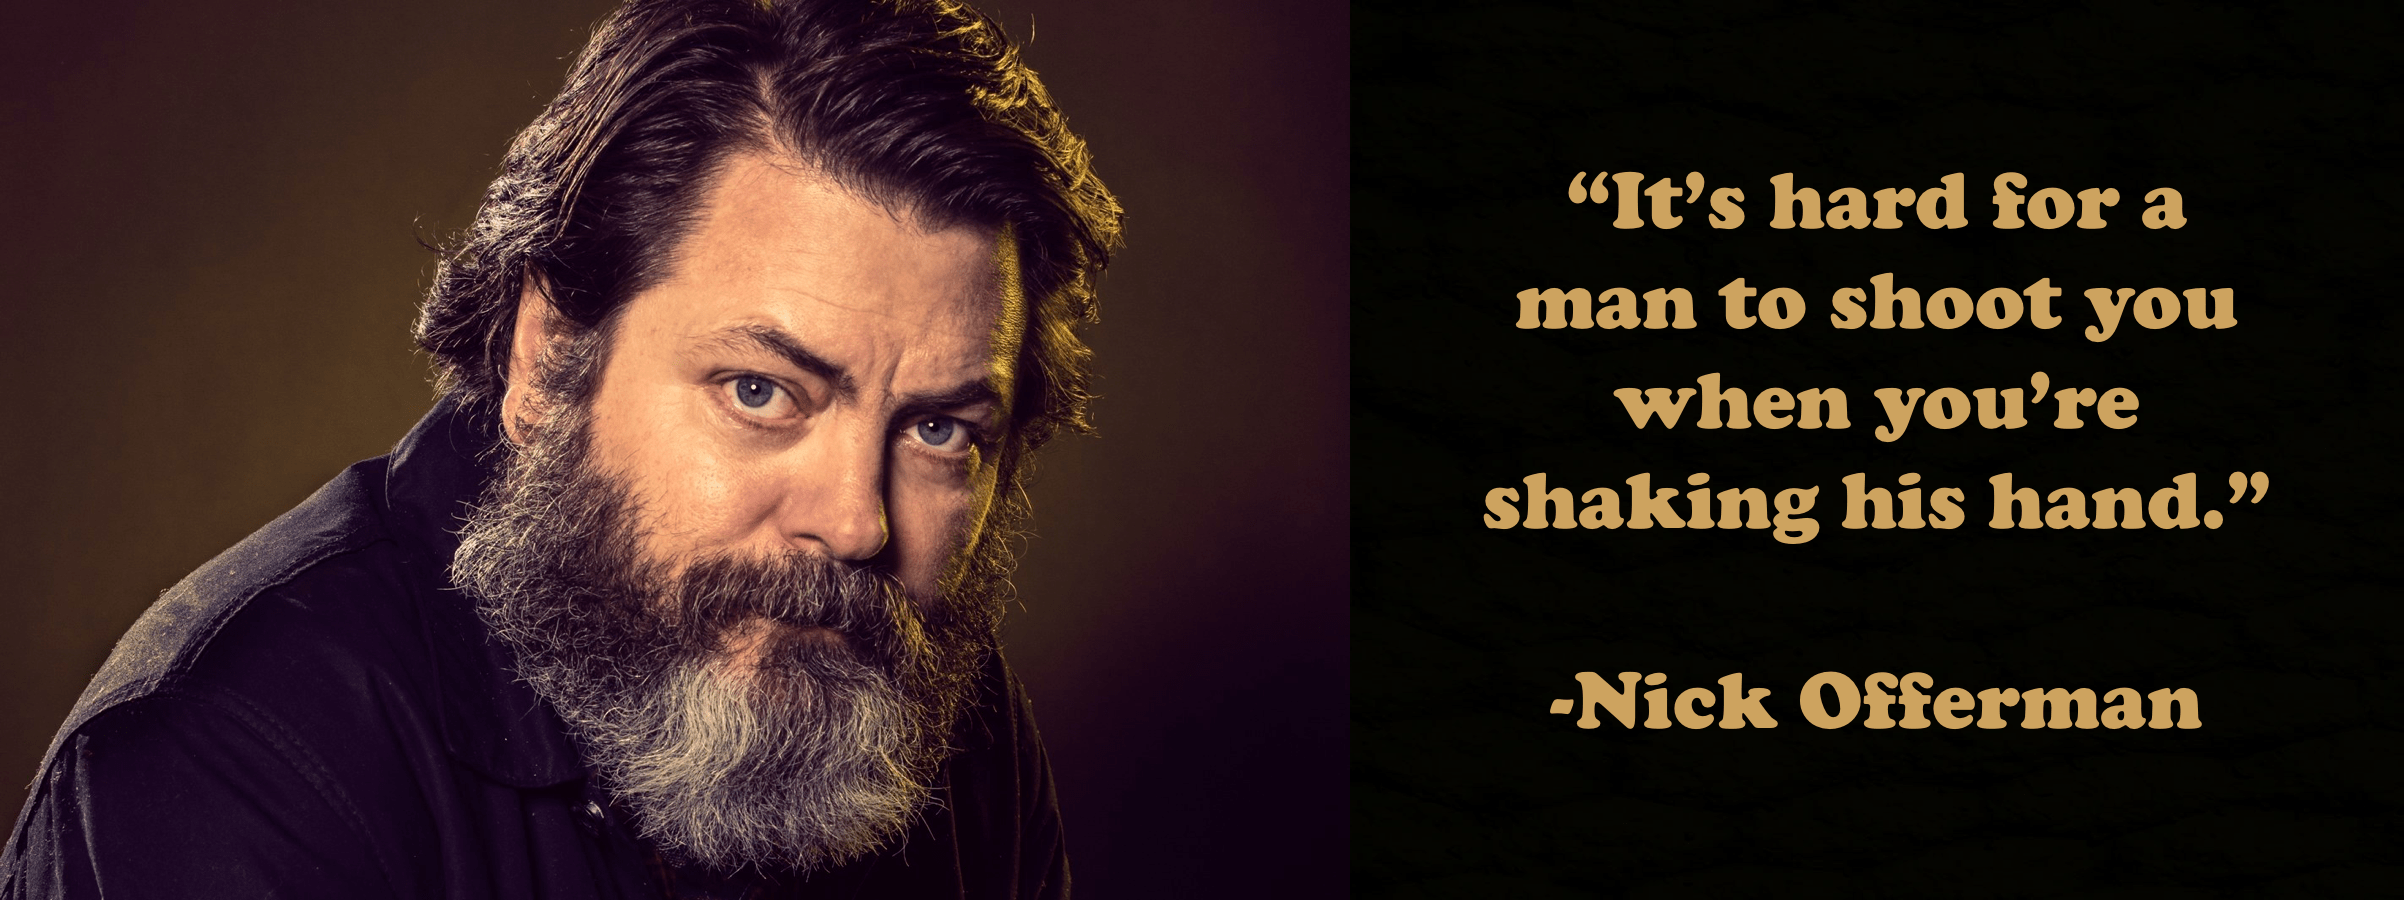 """It's hard for a man to shoot you when you're shaking his hand."" -Nick Offerman [2404 × 900] [OC]"